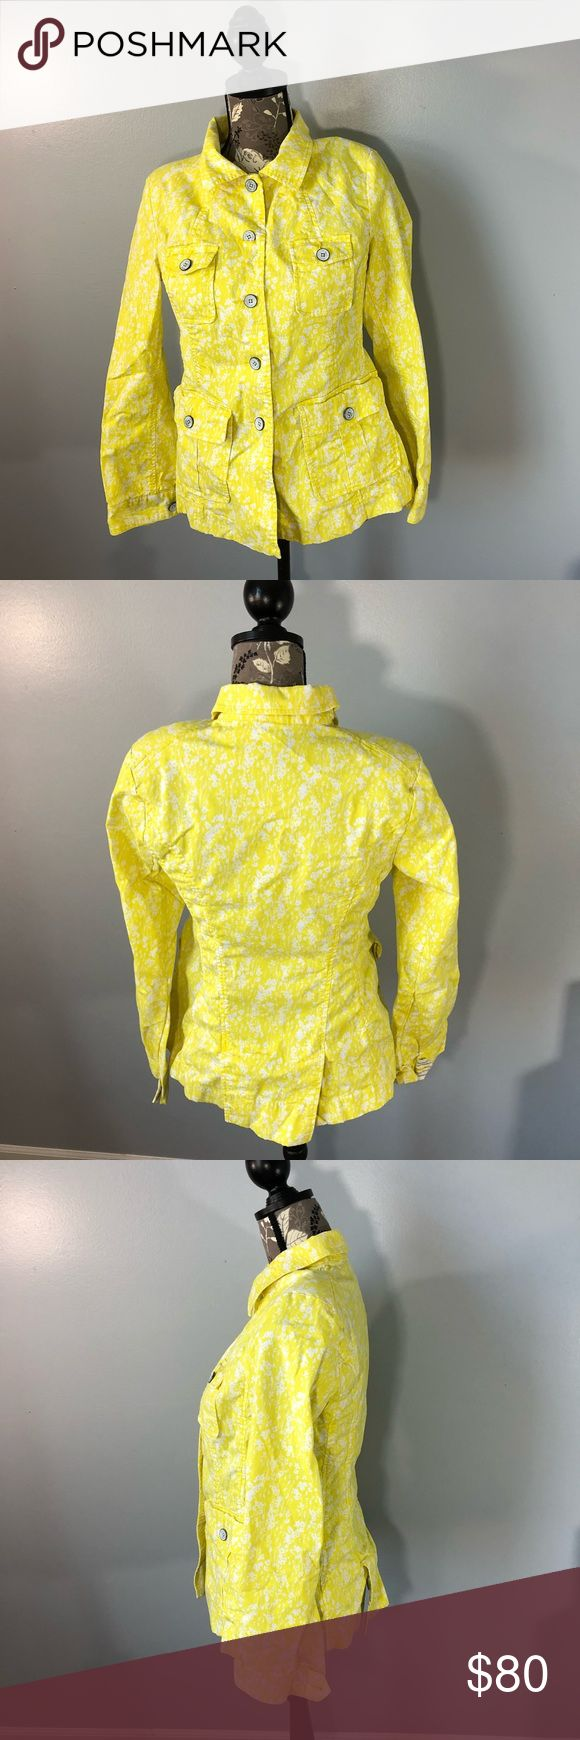 Cabi Yellow Daisies Field Jacket Size Small In nice gently used condition comes from a smoke free home  Cotton, perfect for spring  Measurements  Bust 34 Length 24 Accepting reasonable offers ✨ CAbi Jackets & Coats